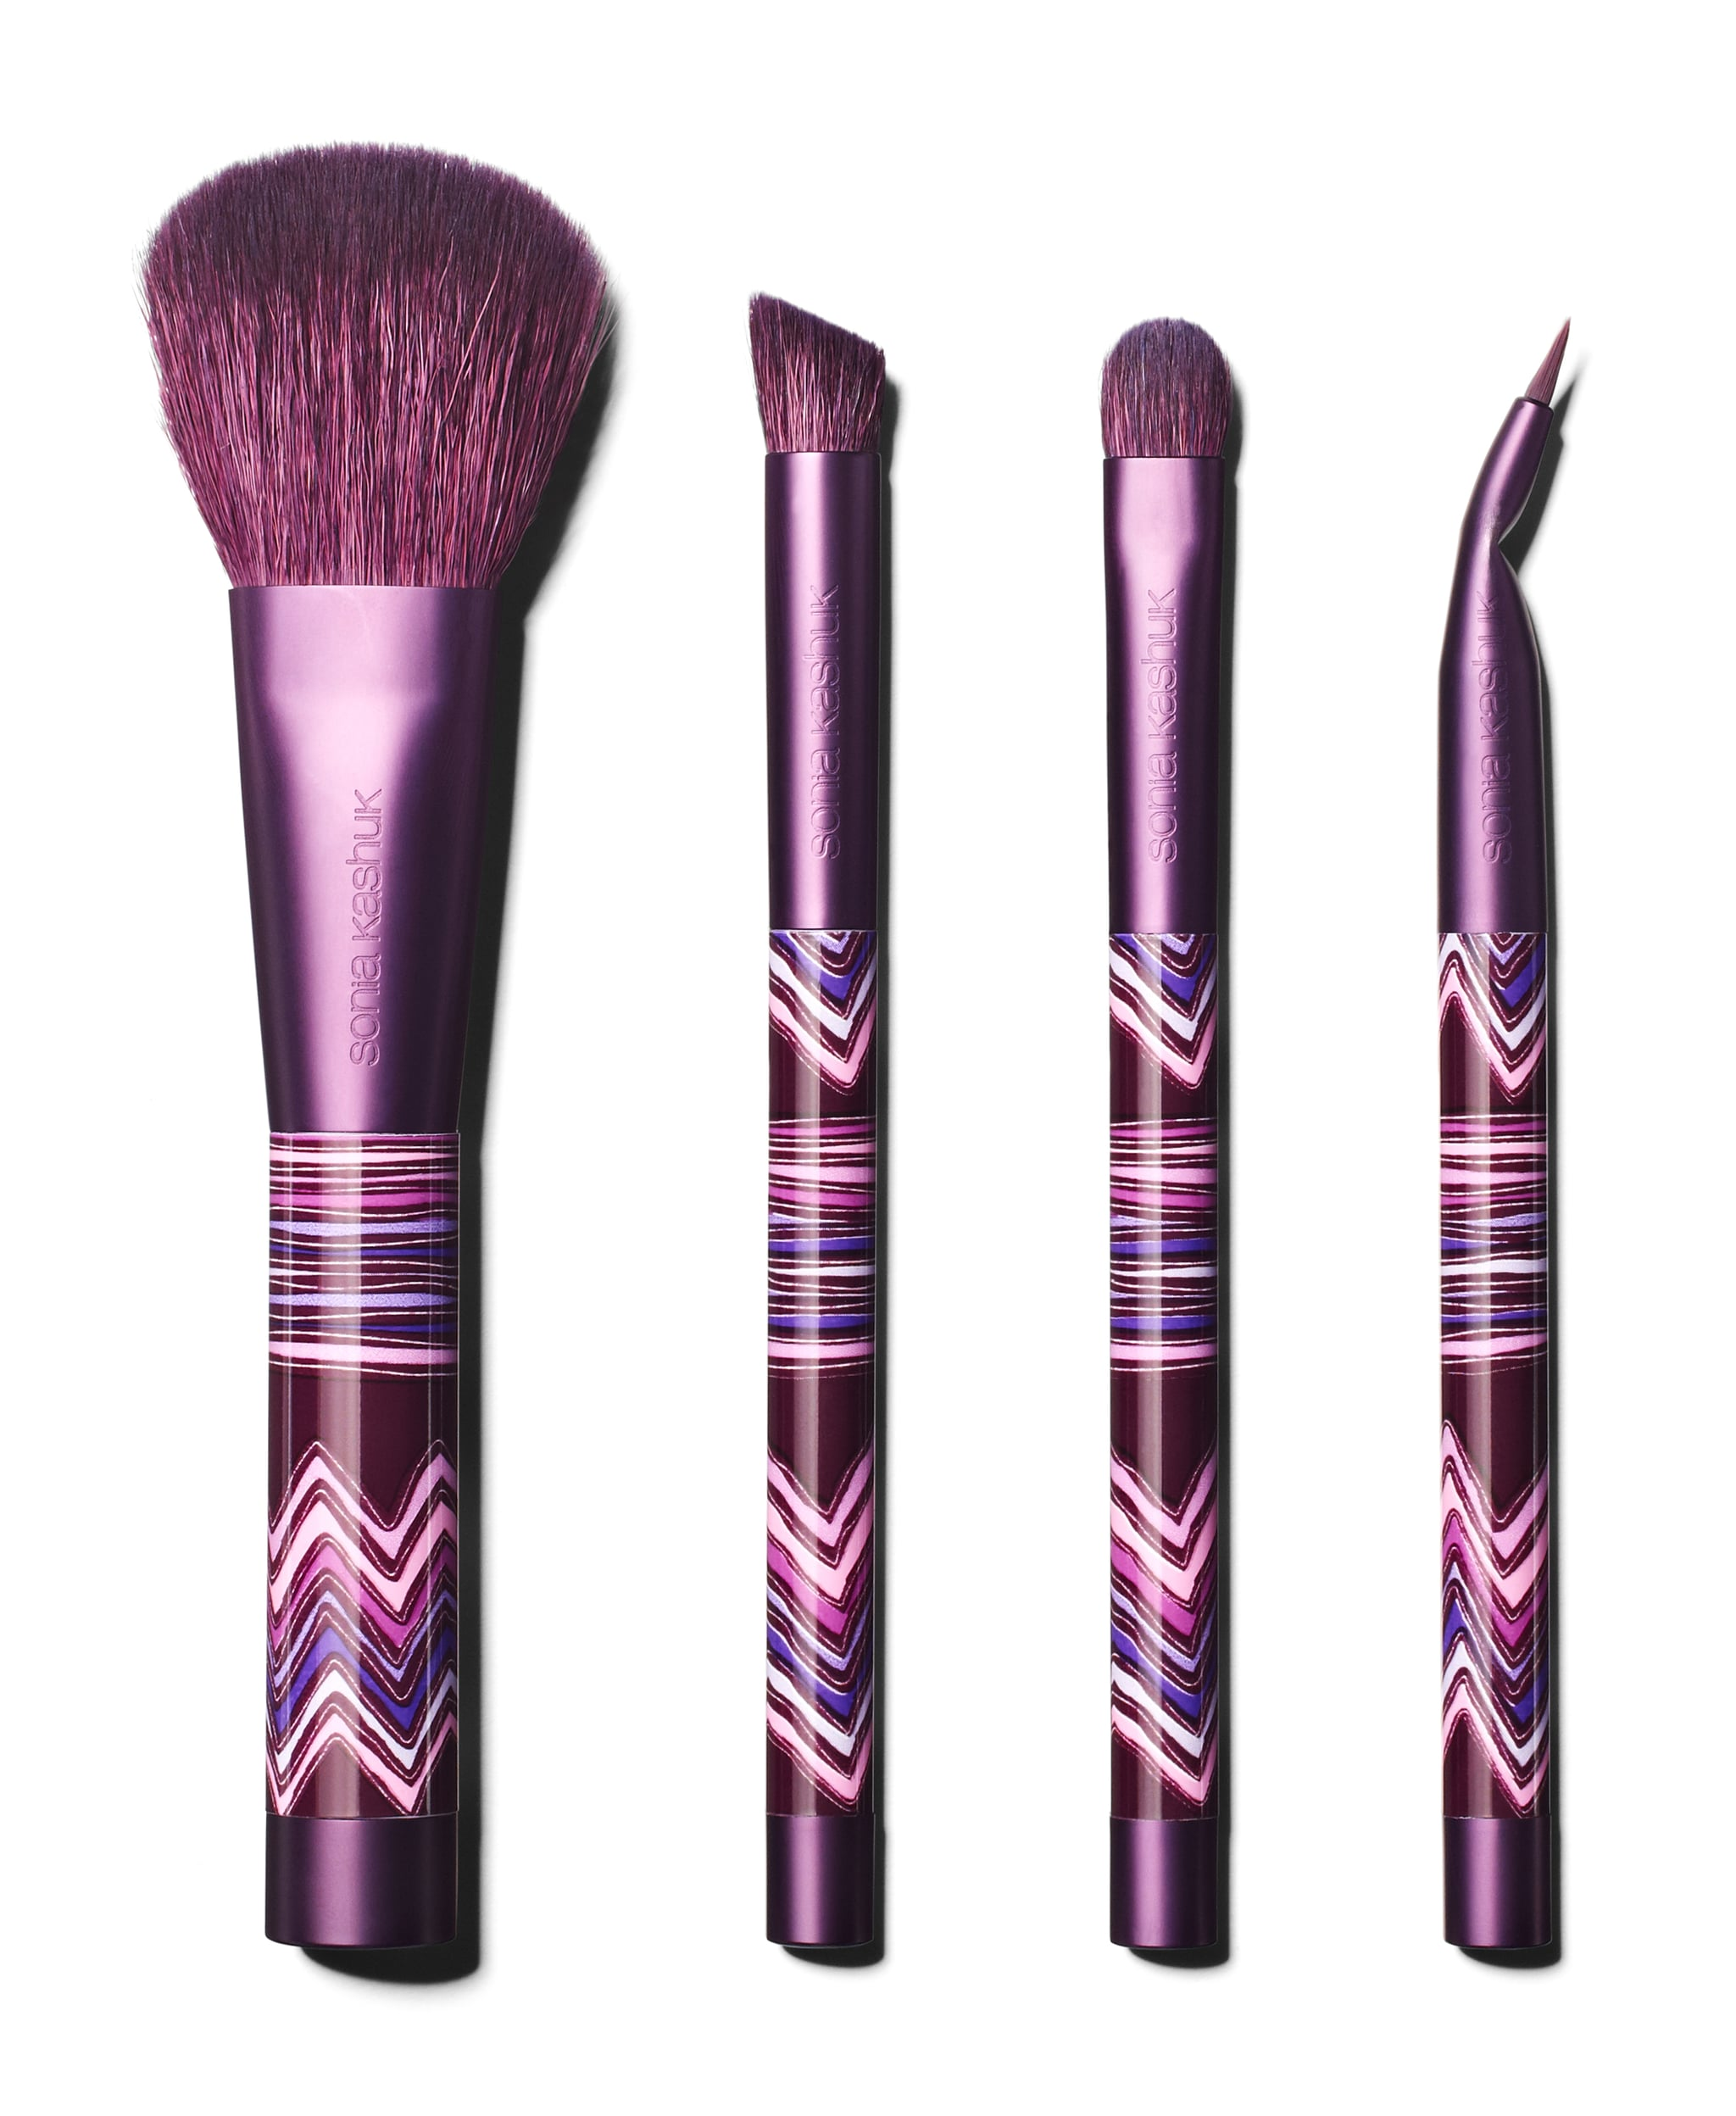 Brush Couture Four-Piece Brush Set, $13